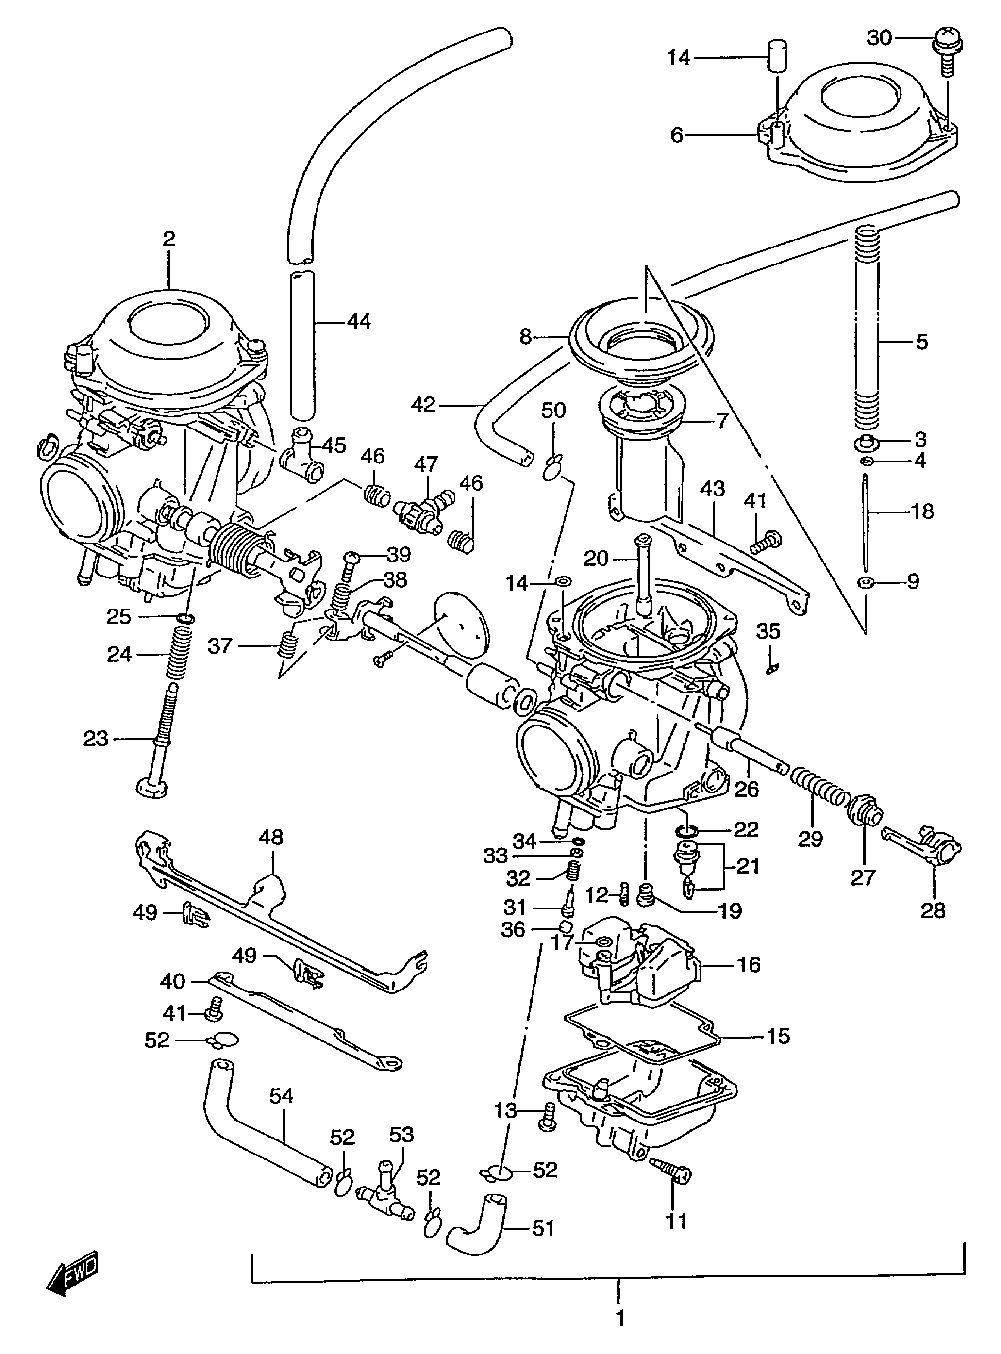 Miscellaneous carb questions faq rh faq f650 honda recon carb diagram raptor 660 carb diagram